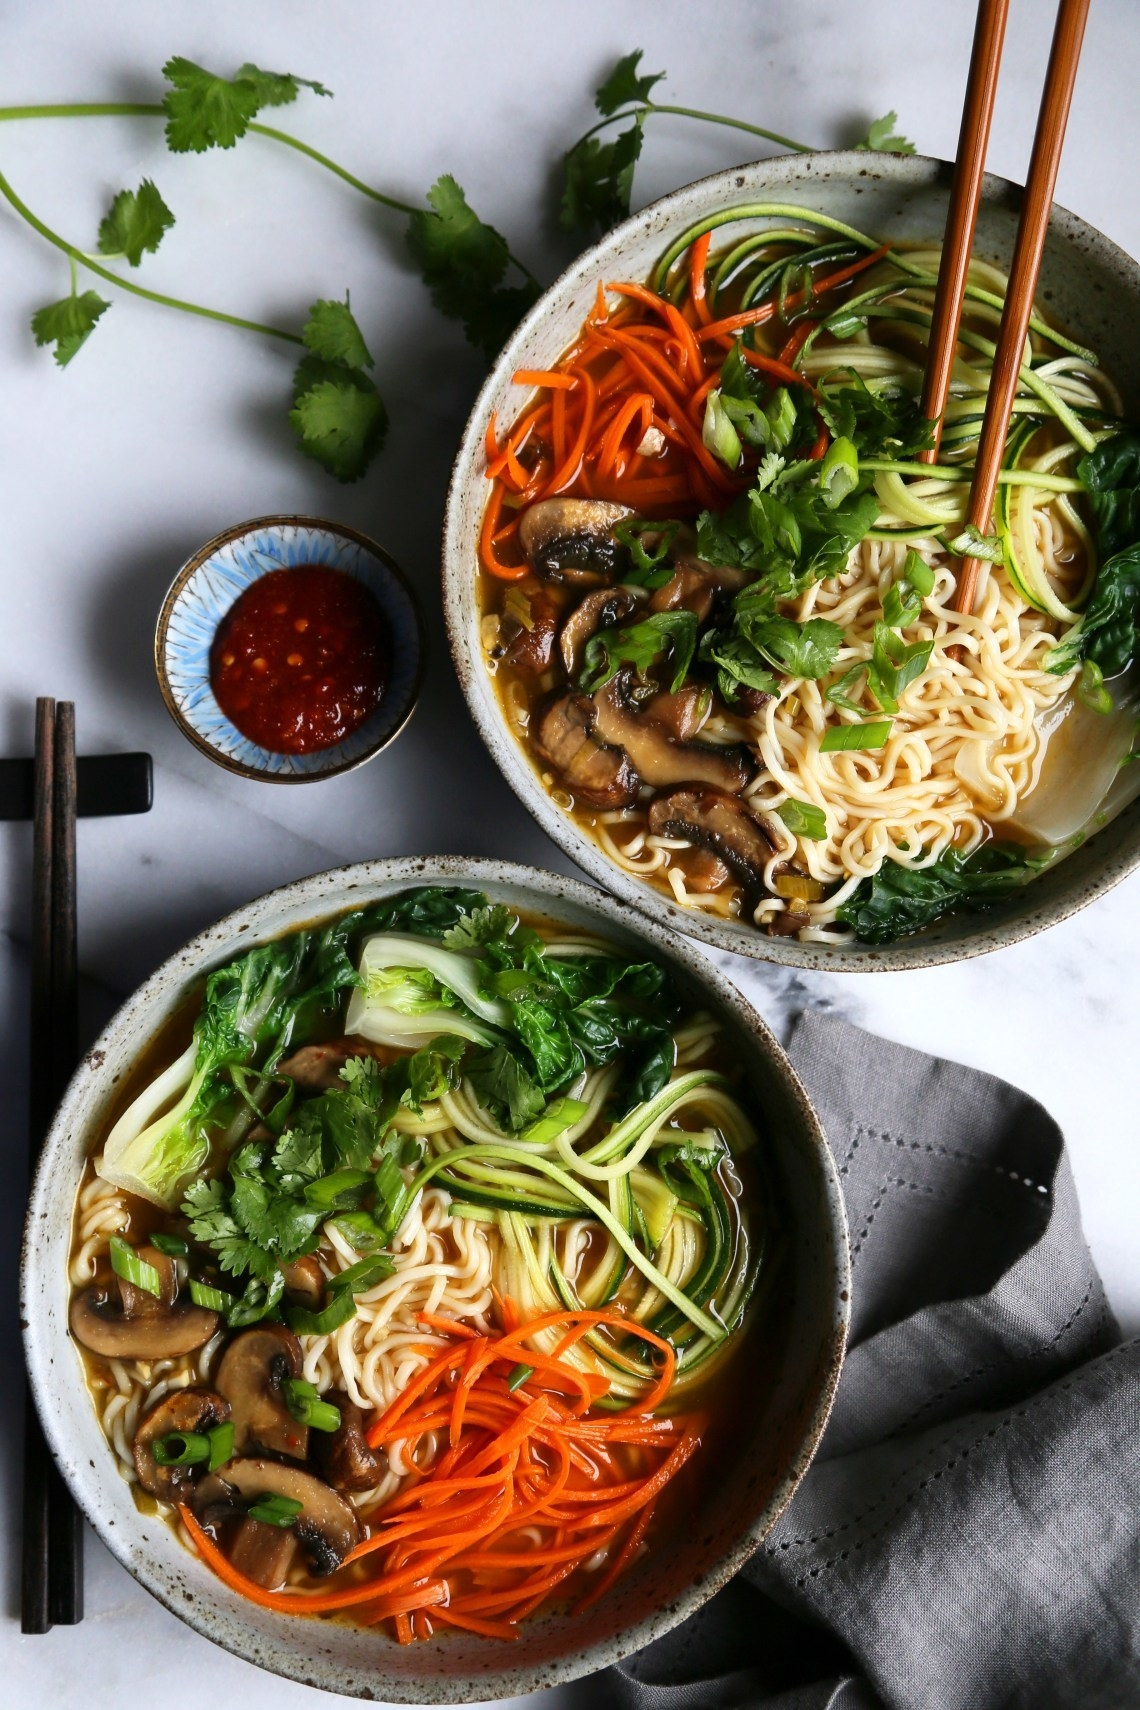 Two bowls of ramen soup with mushrooms, zucchini, carrots, bok choy, and cilantro.